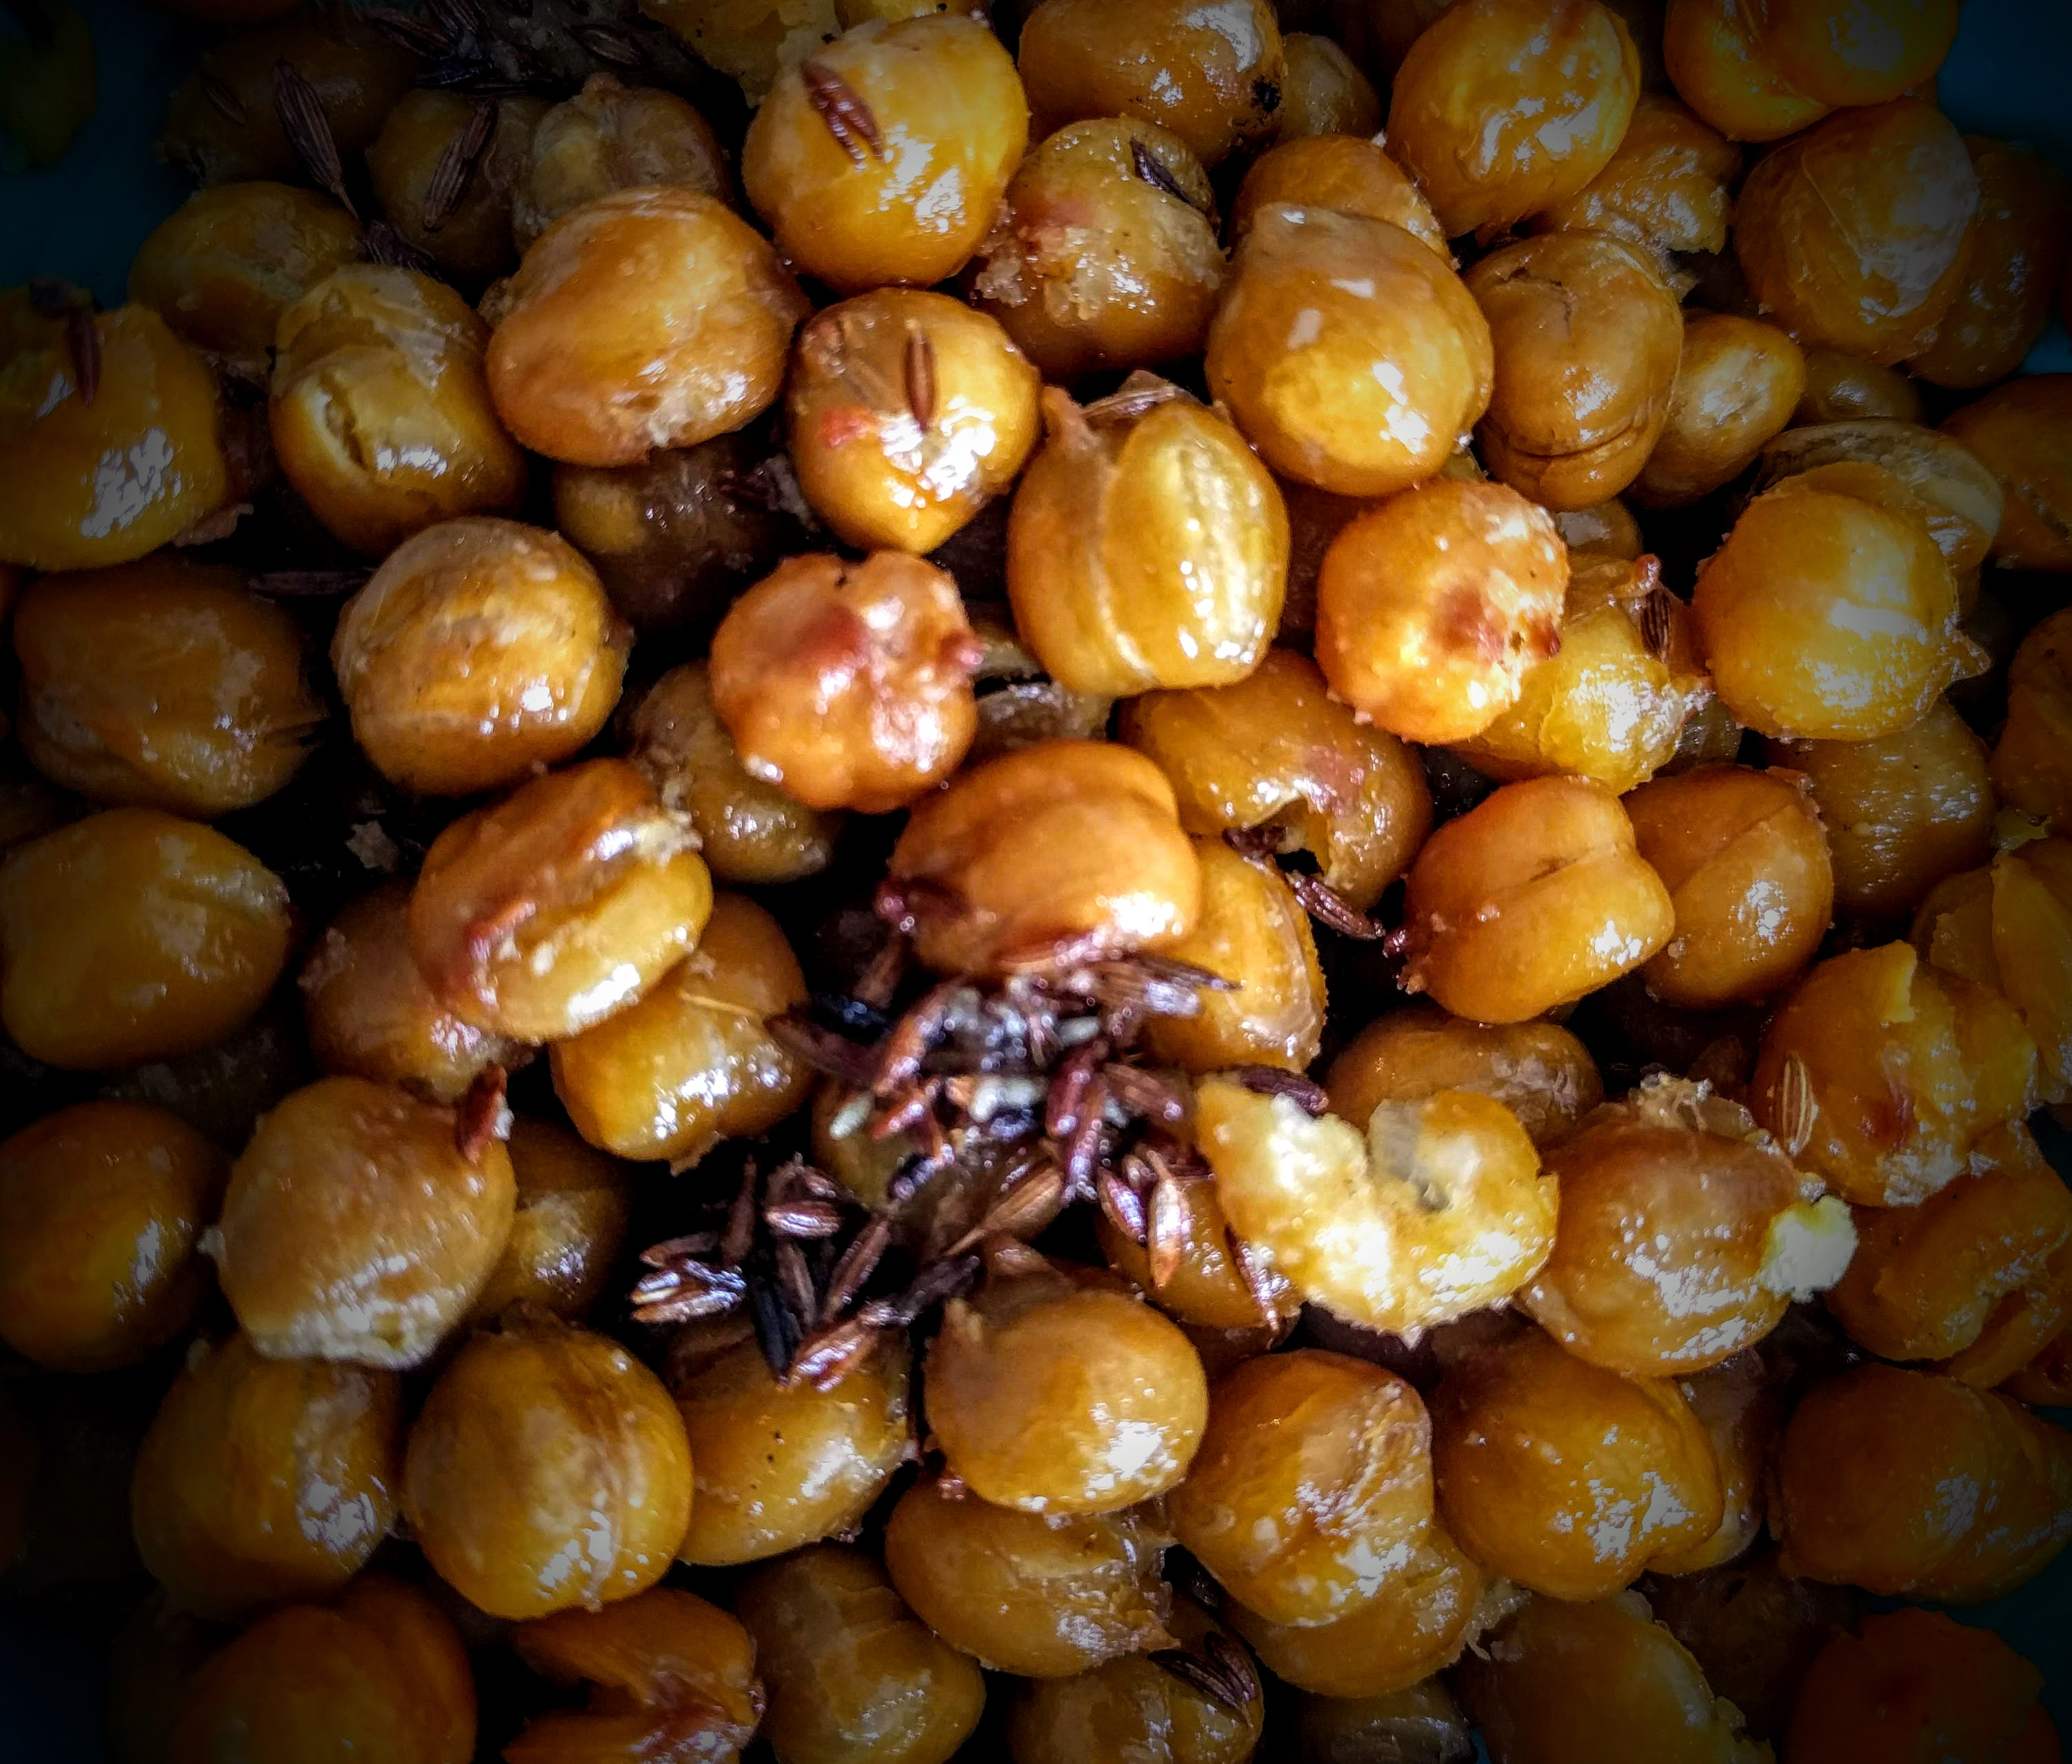 Roasted Chickpea with Cumin Seeds